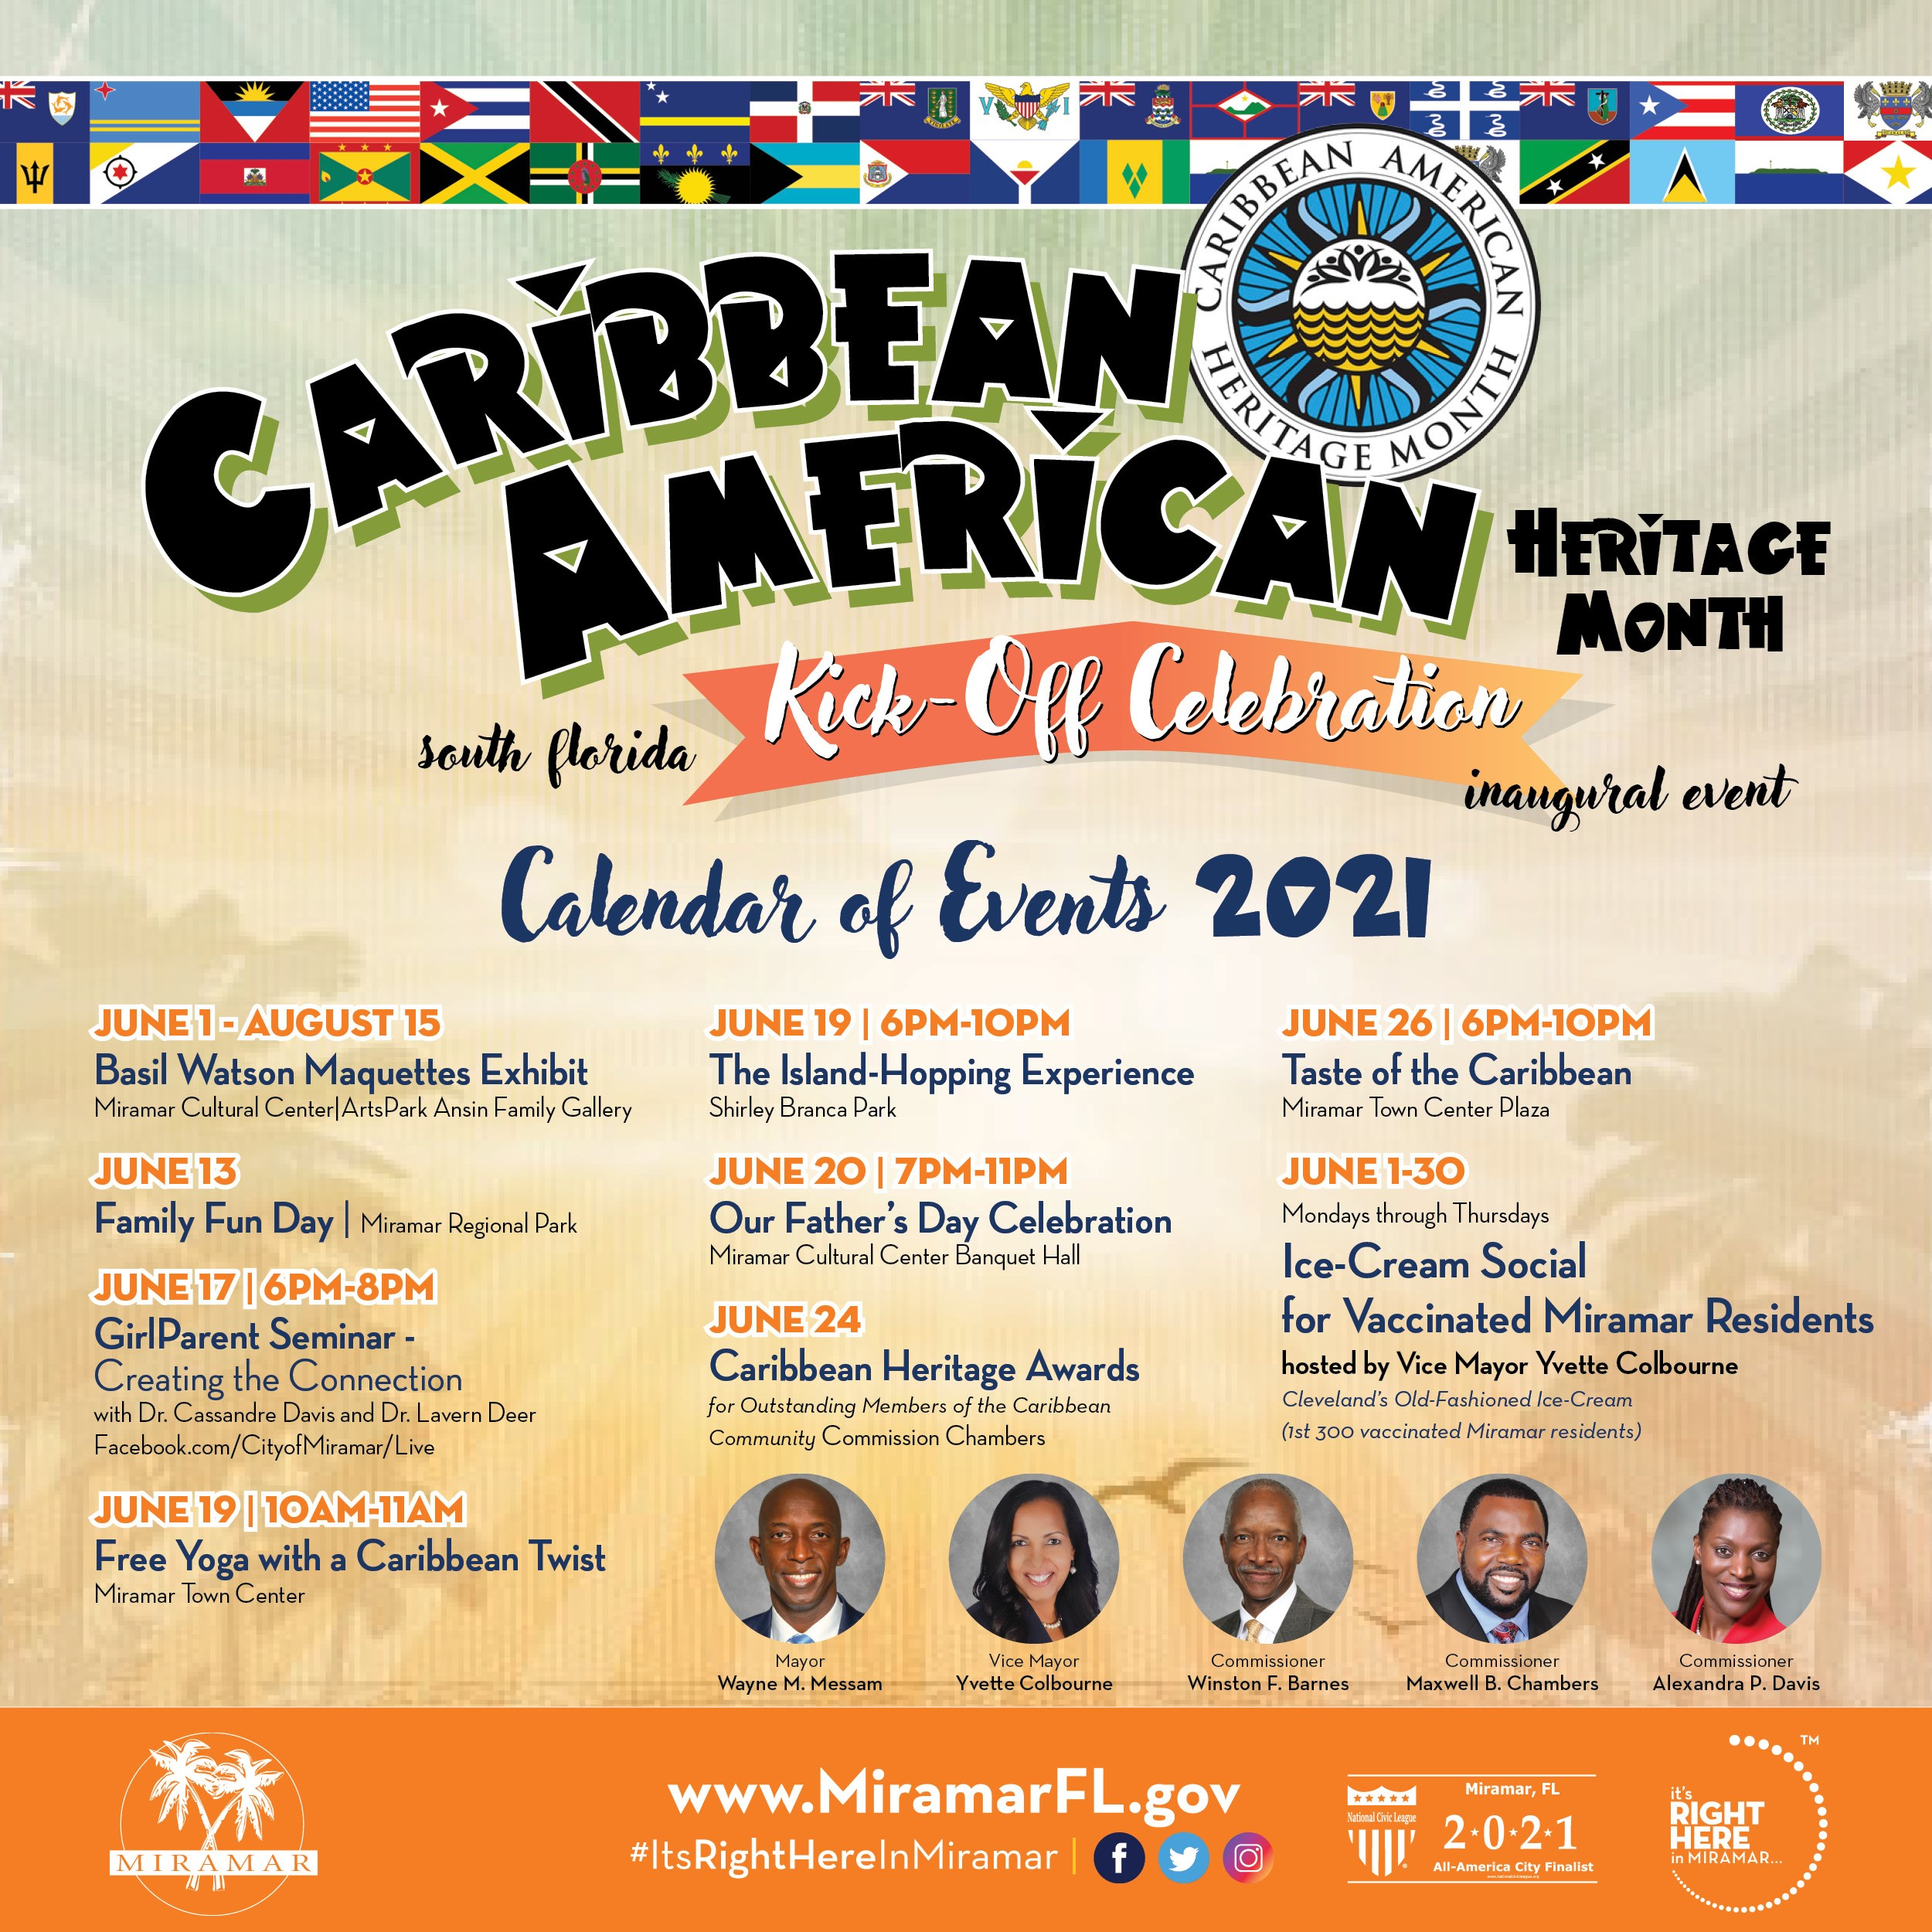 Caribbean American Heritage Month South Florida Kick-off Event